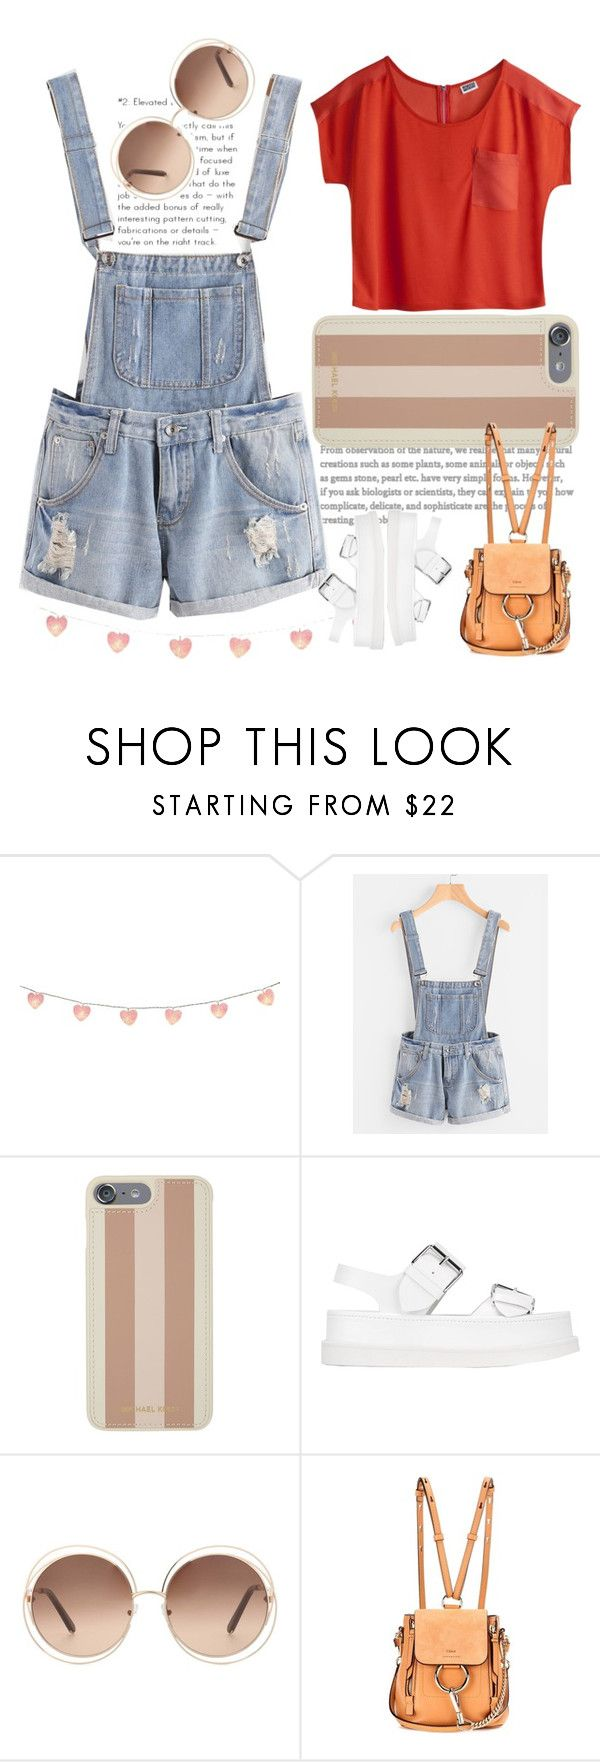 """""""Untitled #181"""" by madness4fashion on Polyvore featuring MTWTFSS Weekday, Michael Kors, STELLA McCARTNEY and Chloé"""